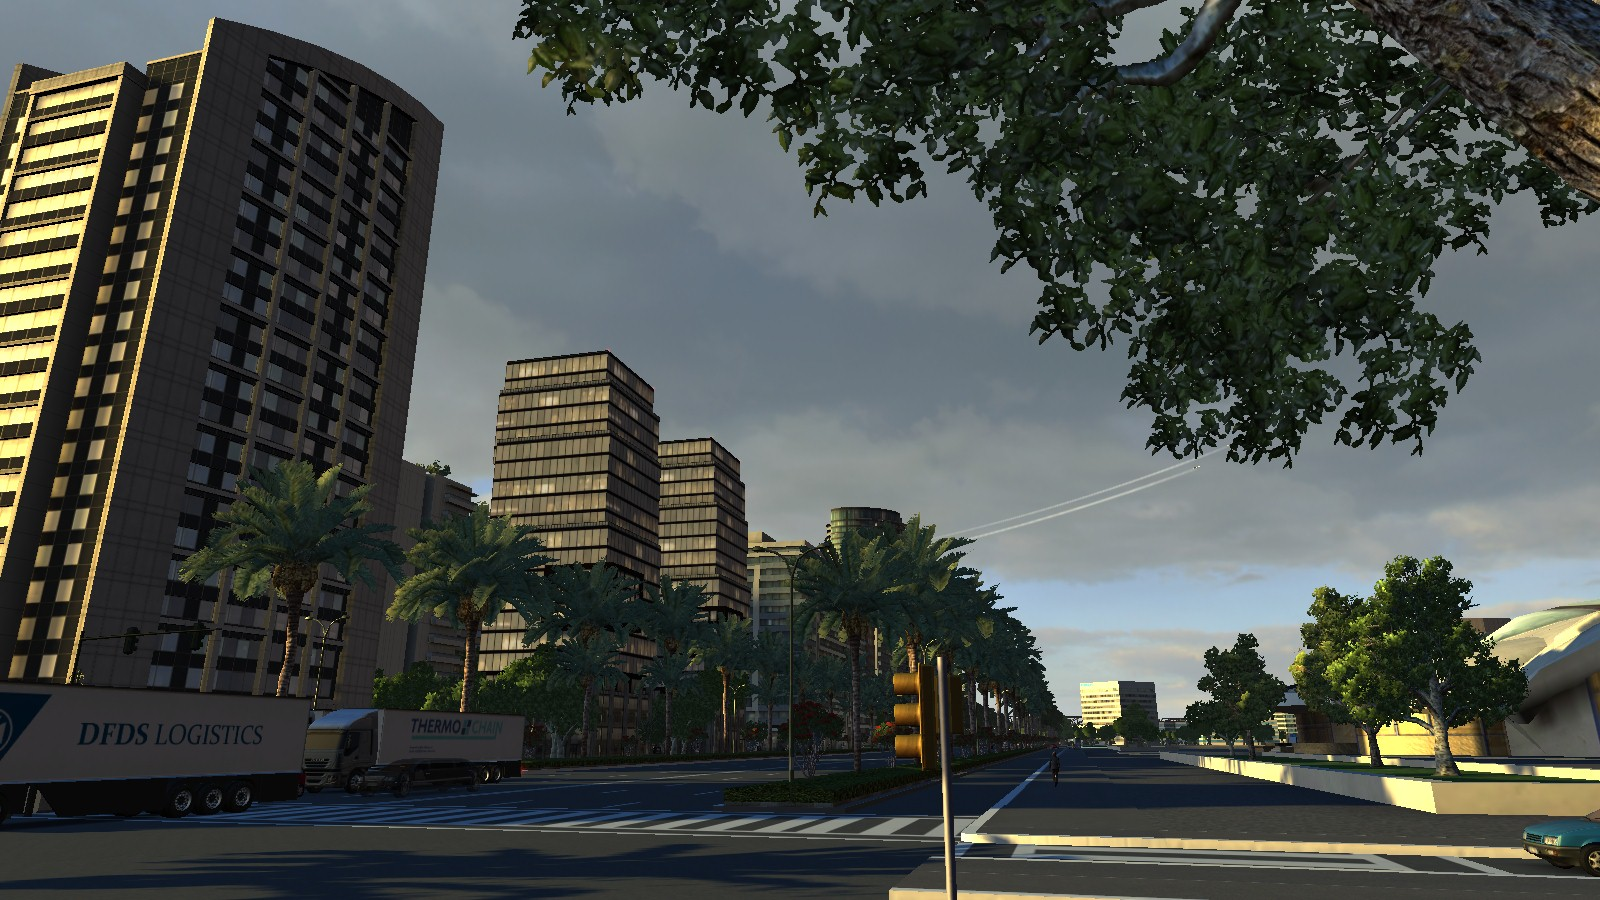 cxl_screenshot_palmas_10.jpg